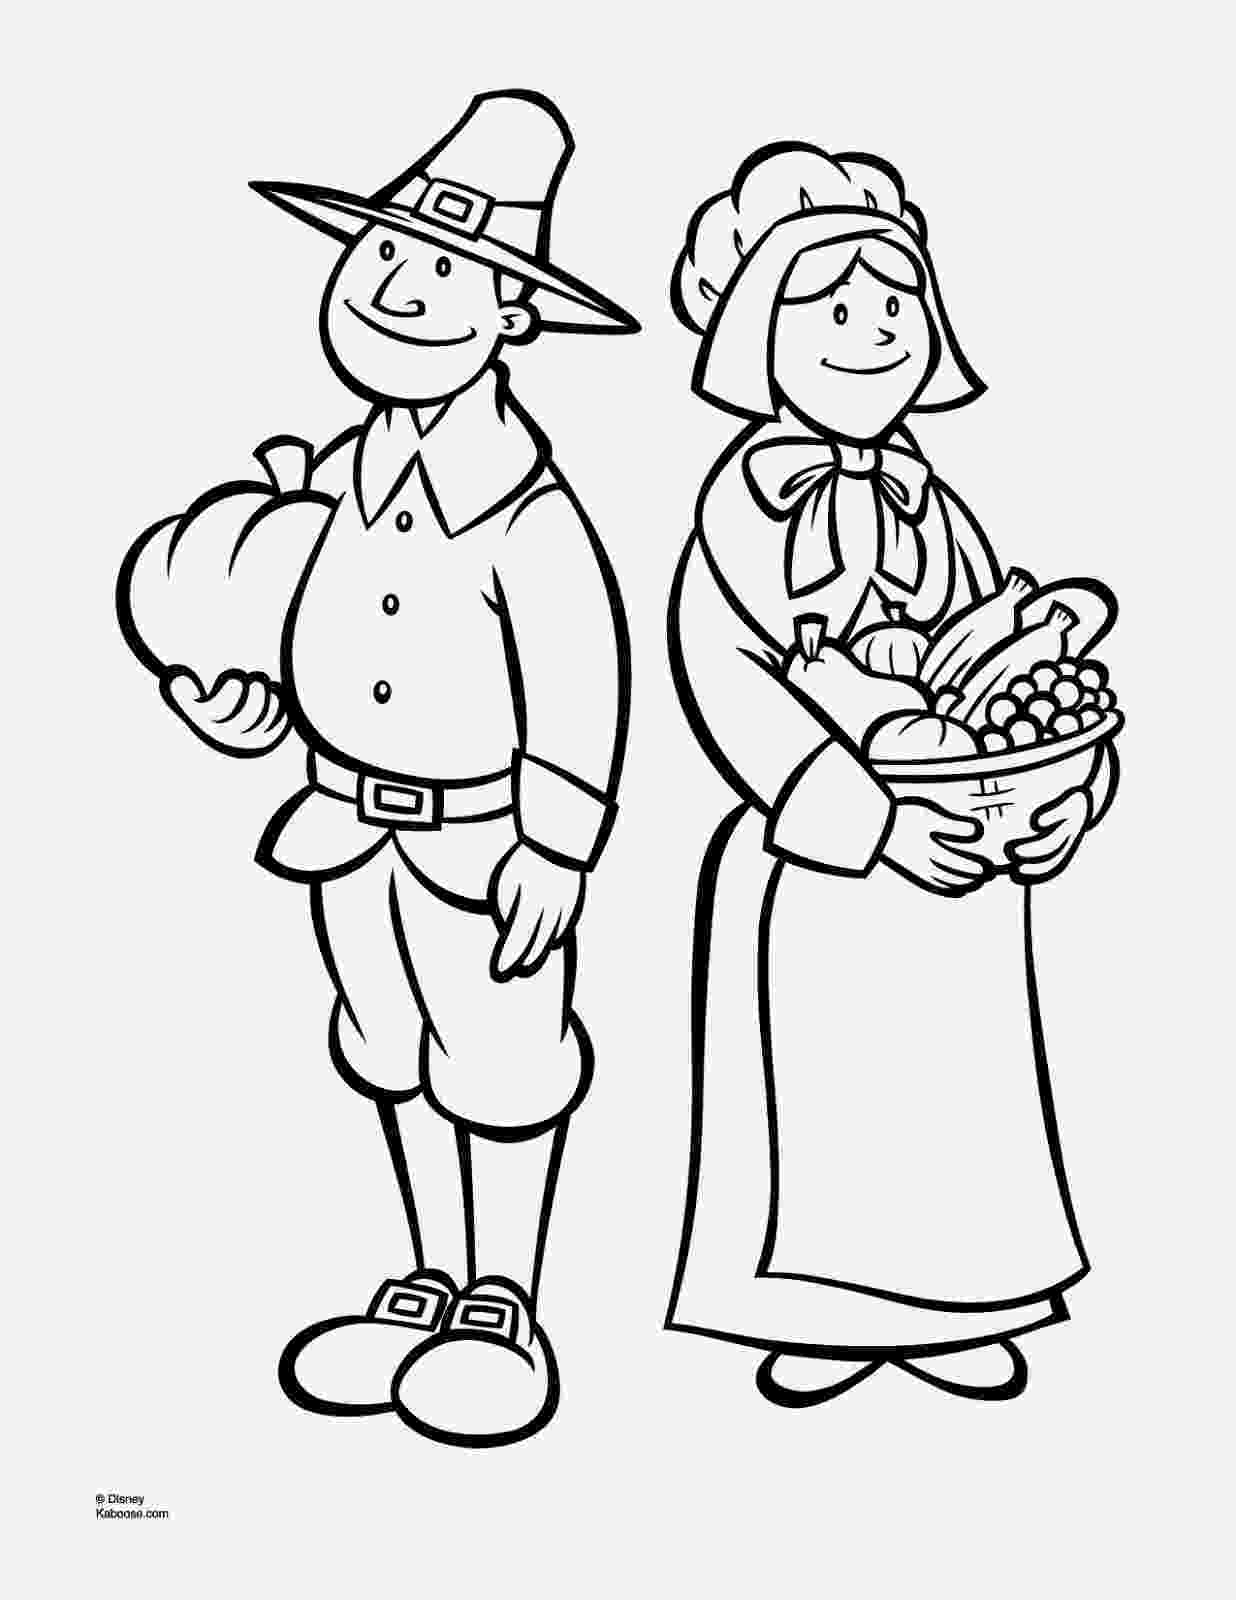 printable thanksgiving coloring book printable thanksgiving coloring pages for kids cool2bkids book coloring printable thanksgiving 1 1